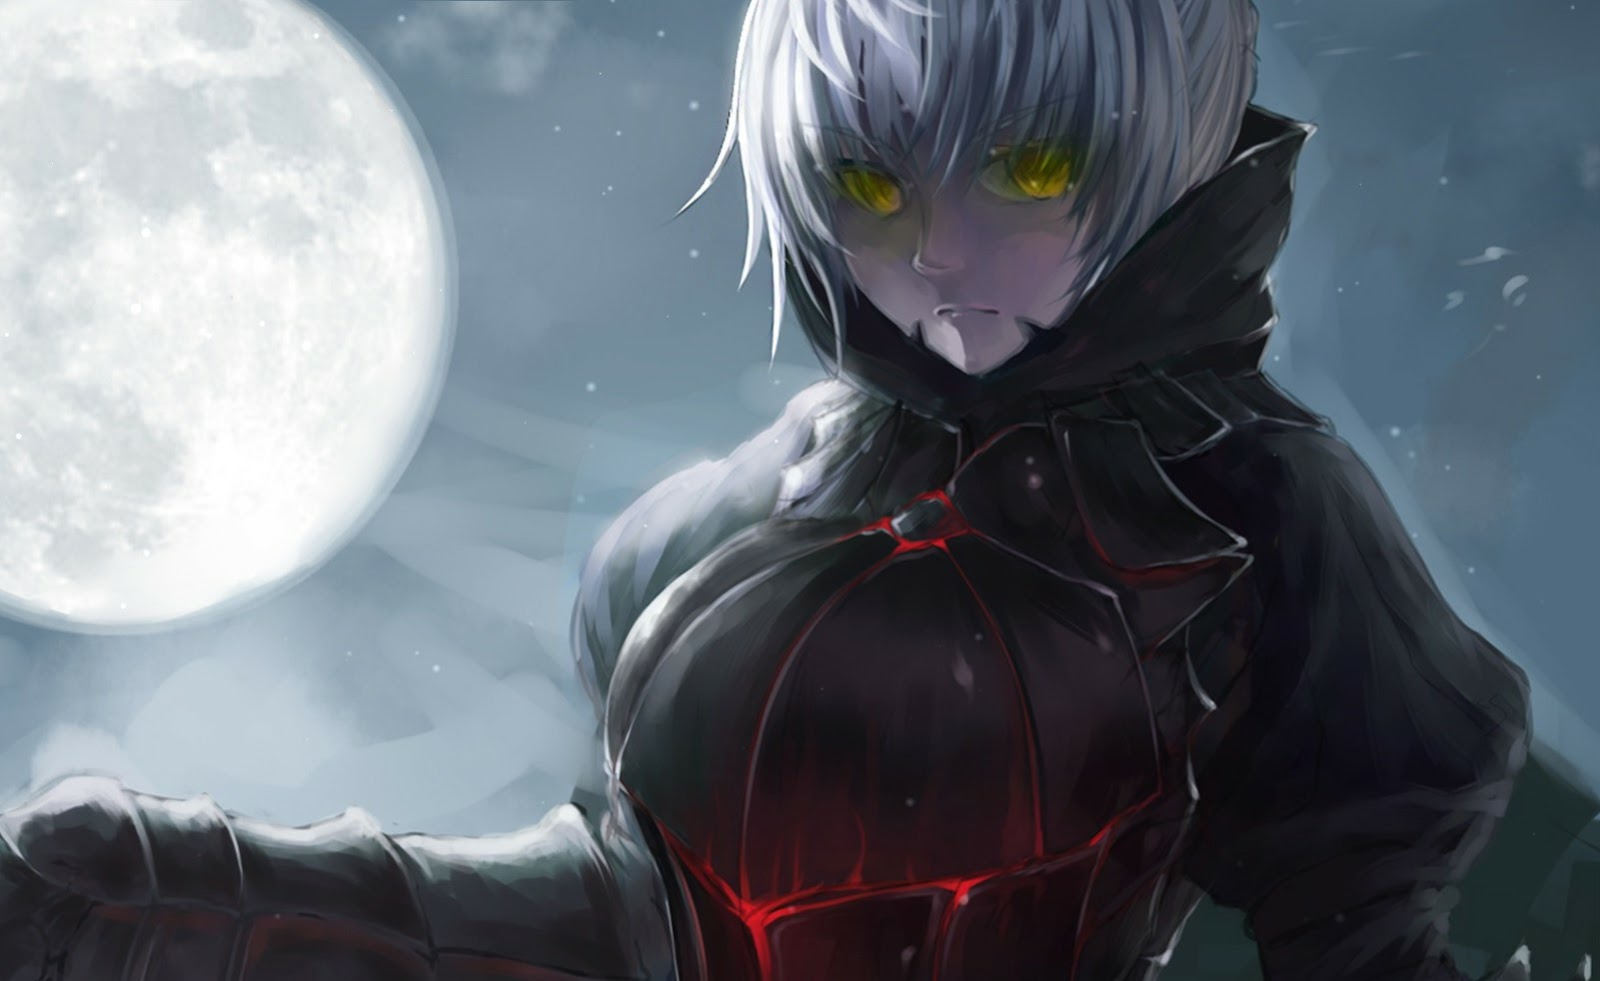 wallpaper engine anime Saber Alter Fate Stay Night free ...